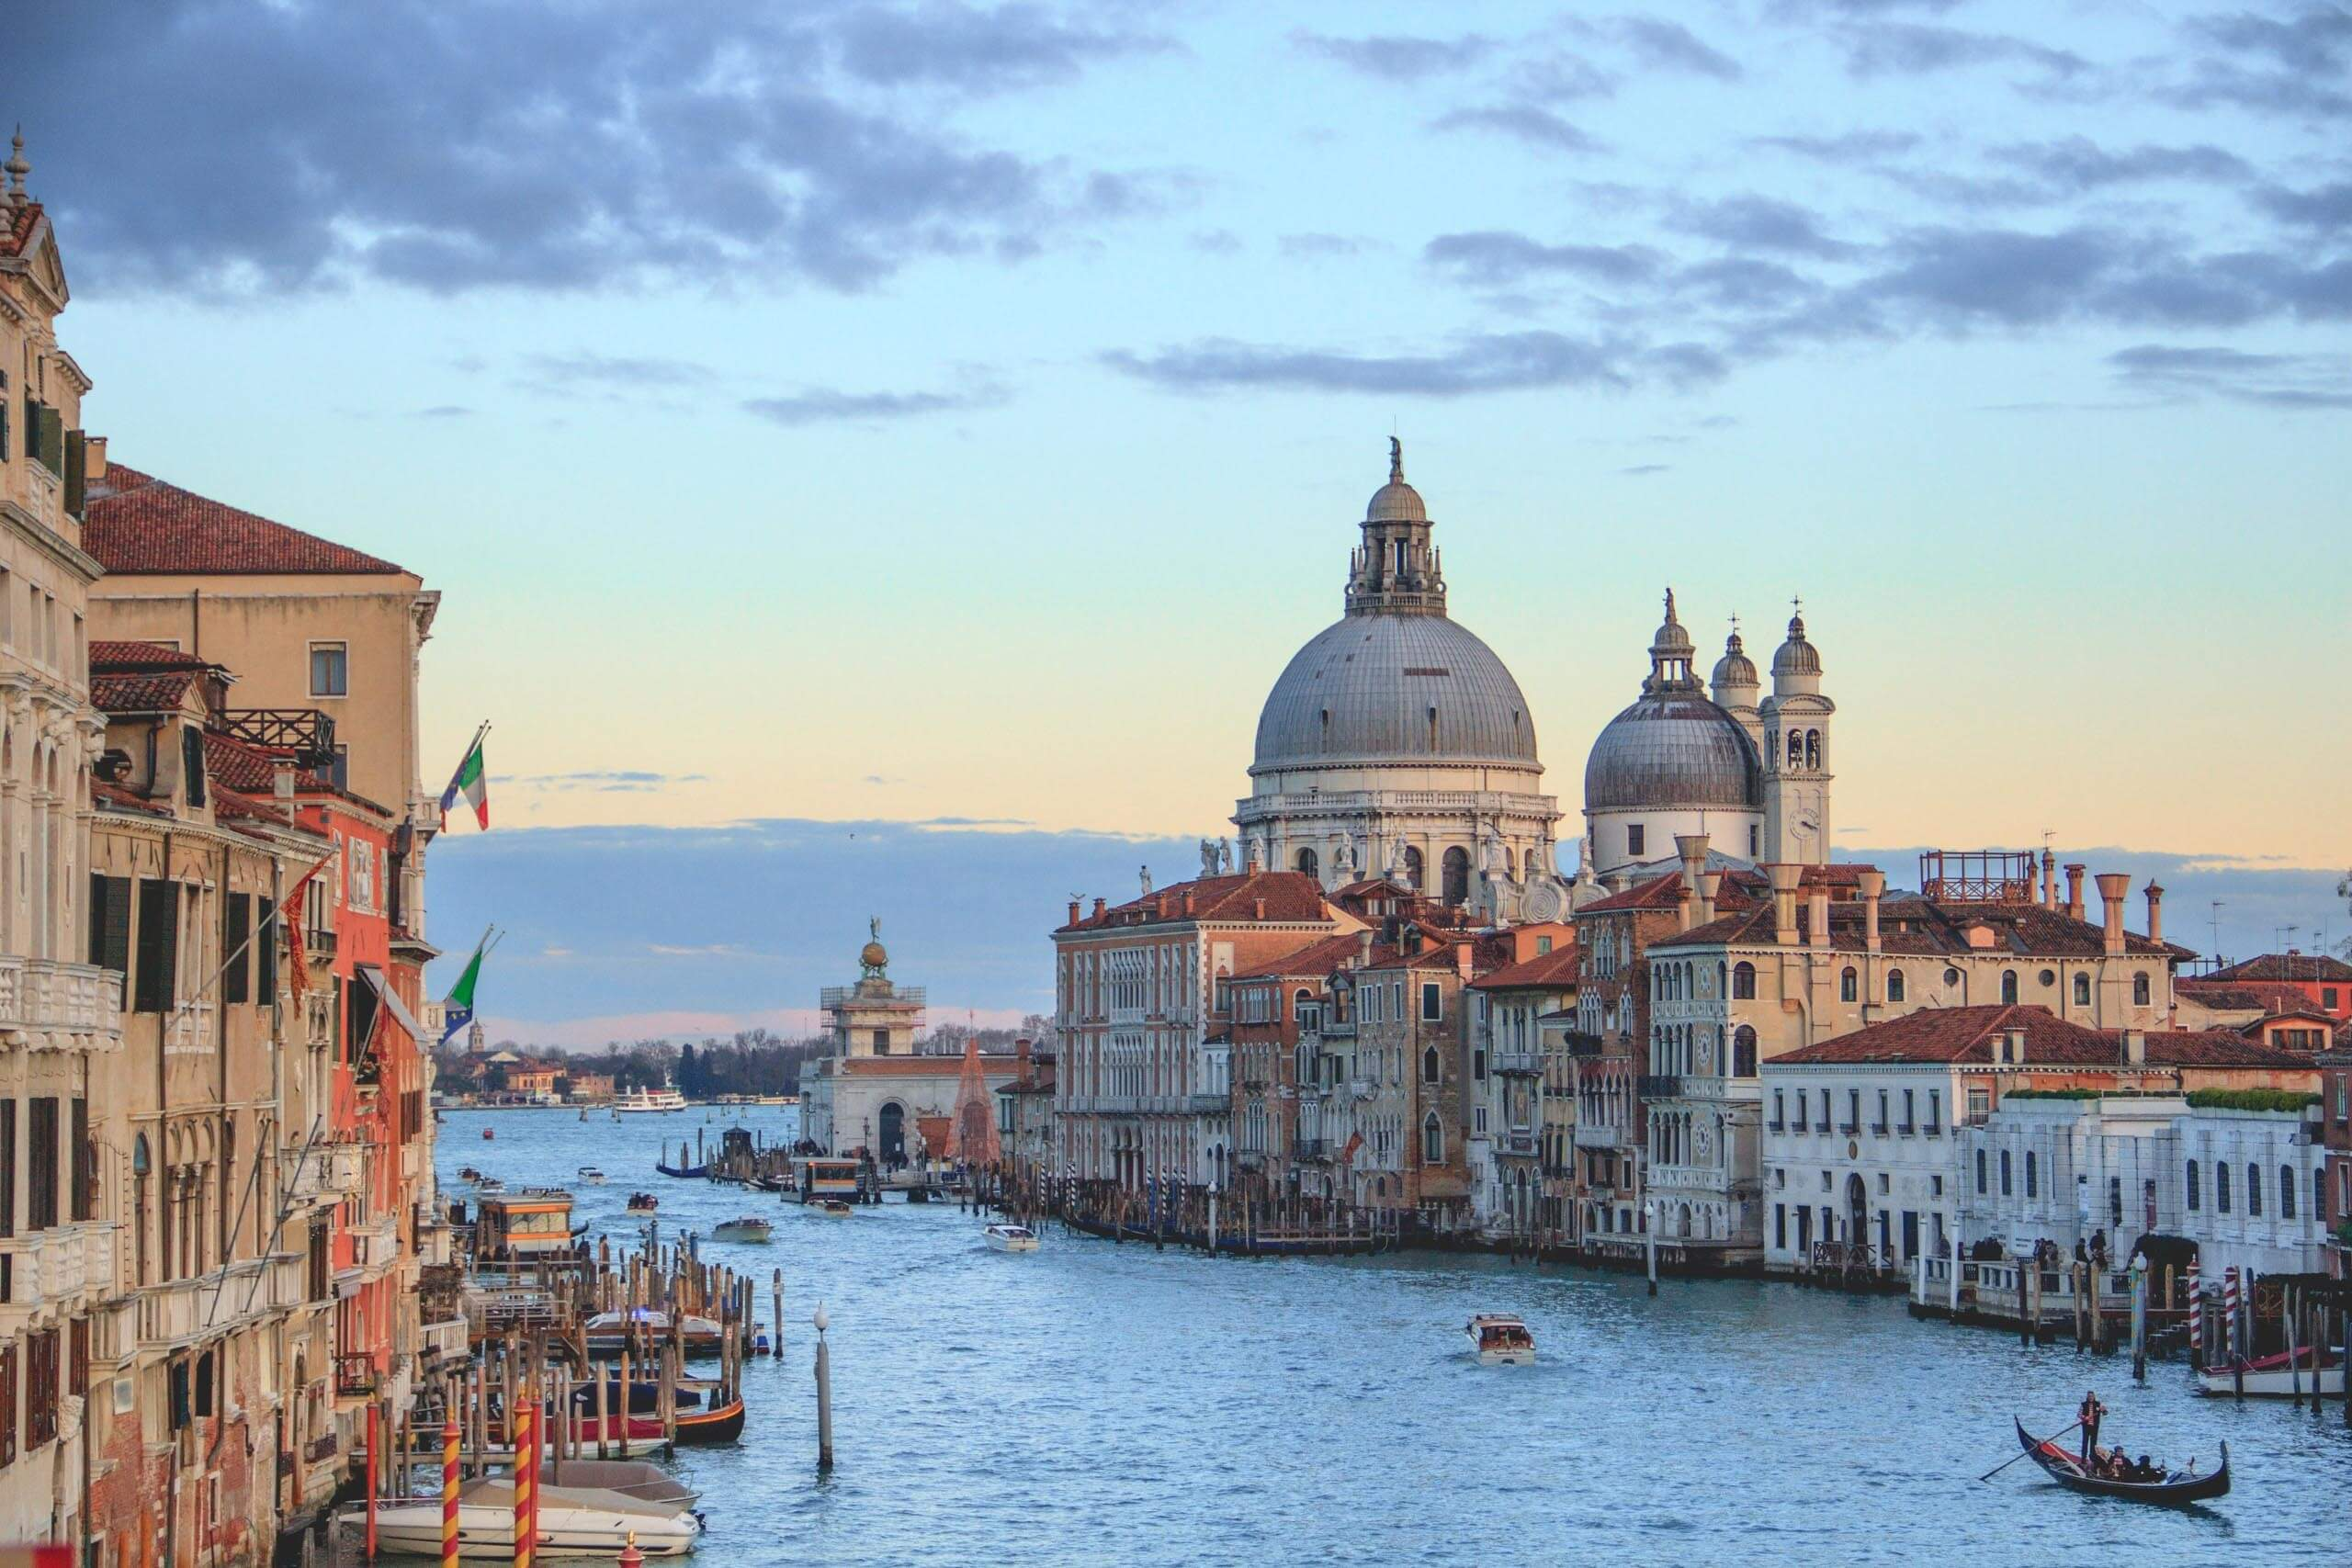 View of the waterways of Venice. Photo by Henrique Ferreira on Unsplash